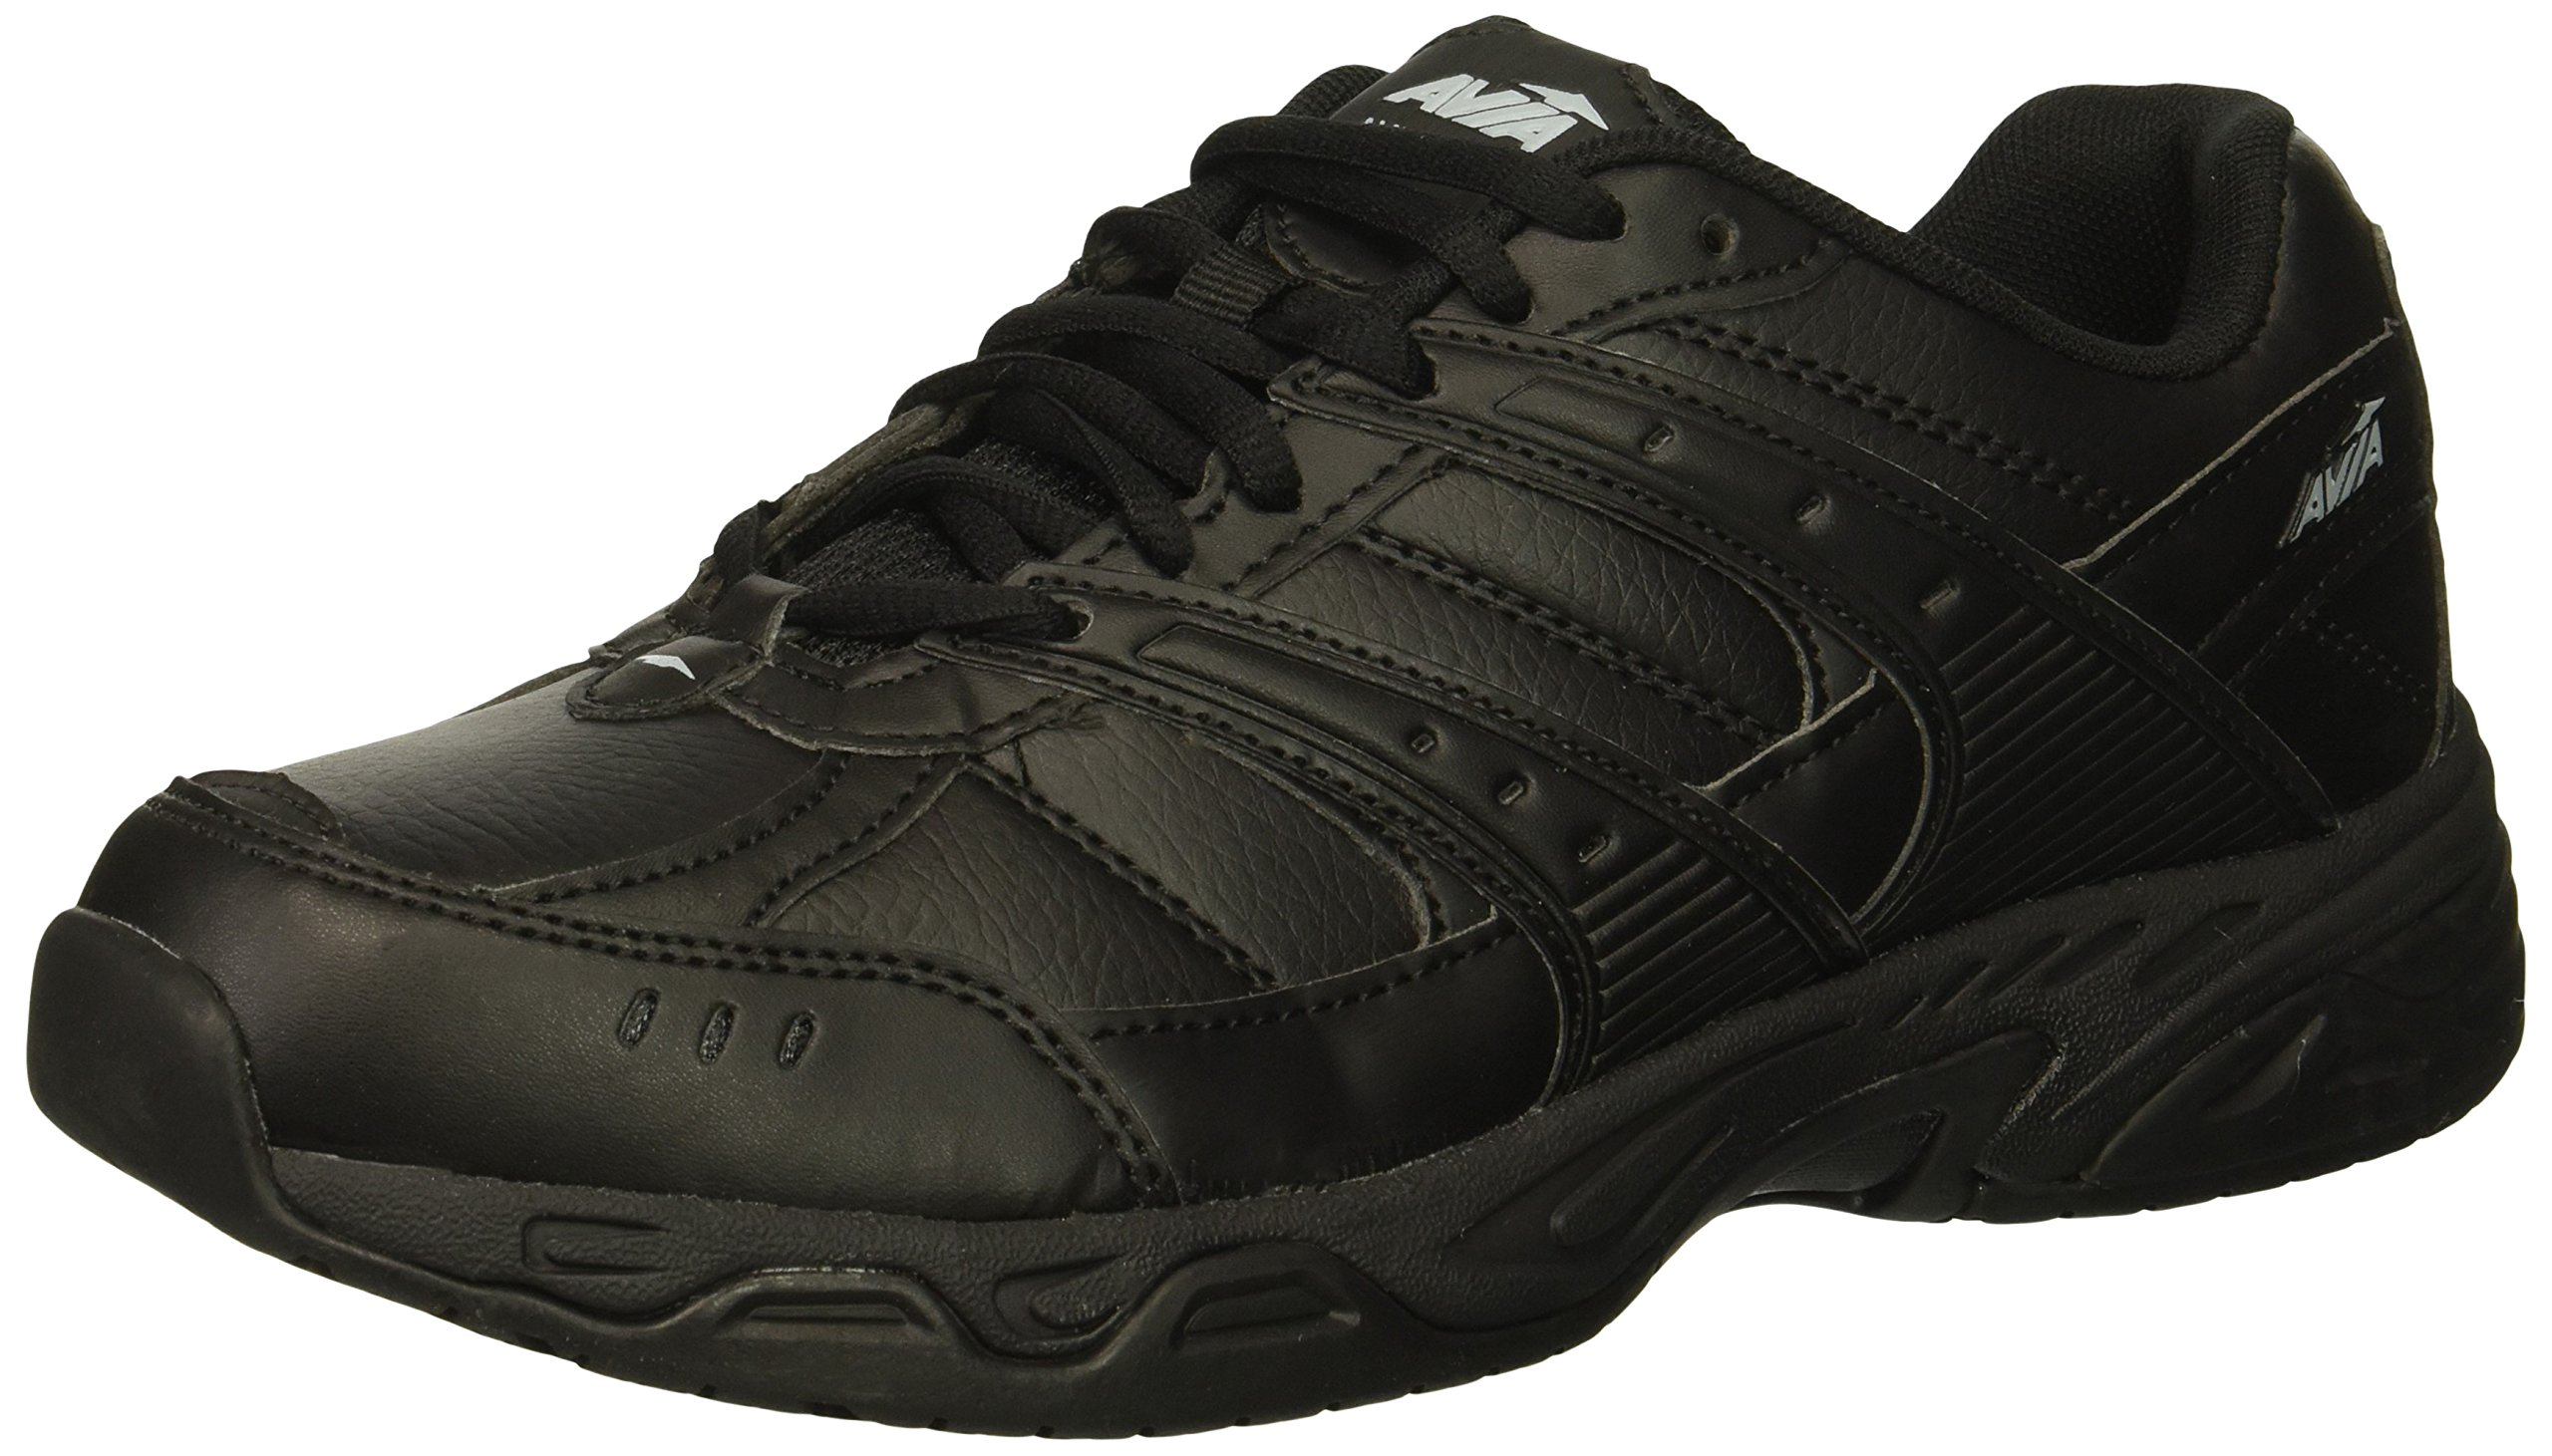 Avia Women's Avi-Union II Food Service Shoe, Black/Castle Rock, 8.5 Wide US by Avia